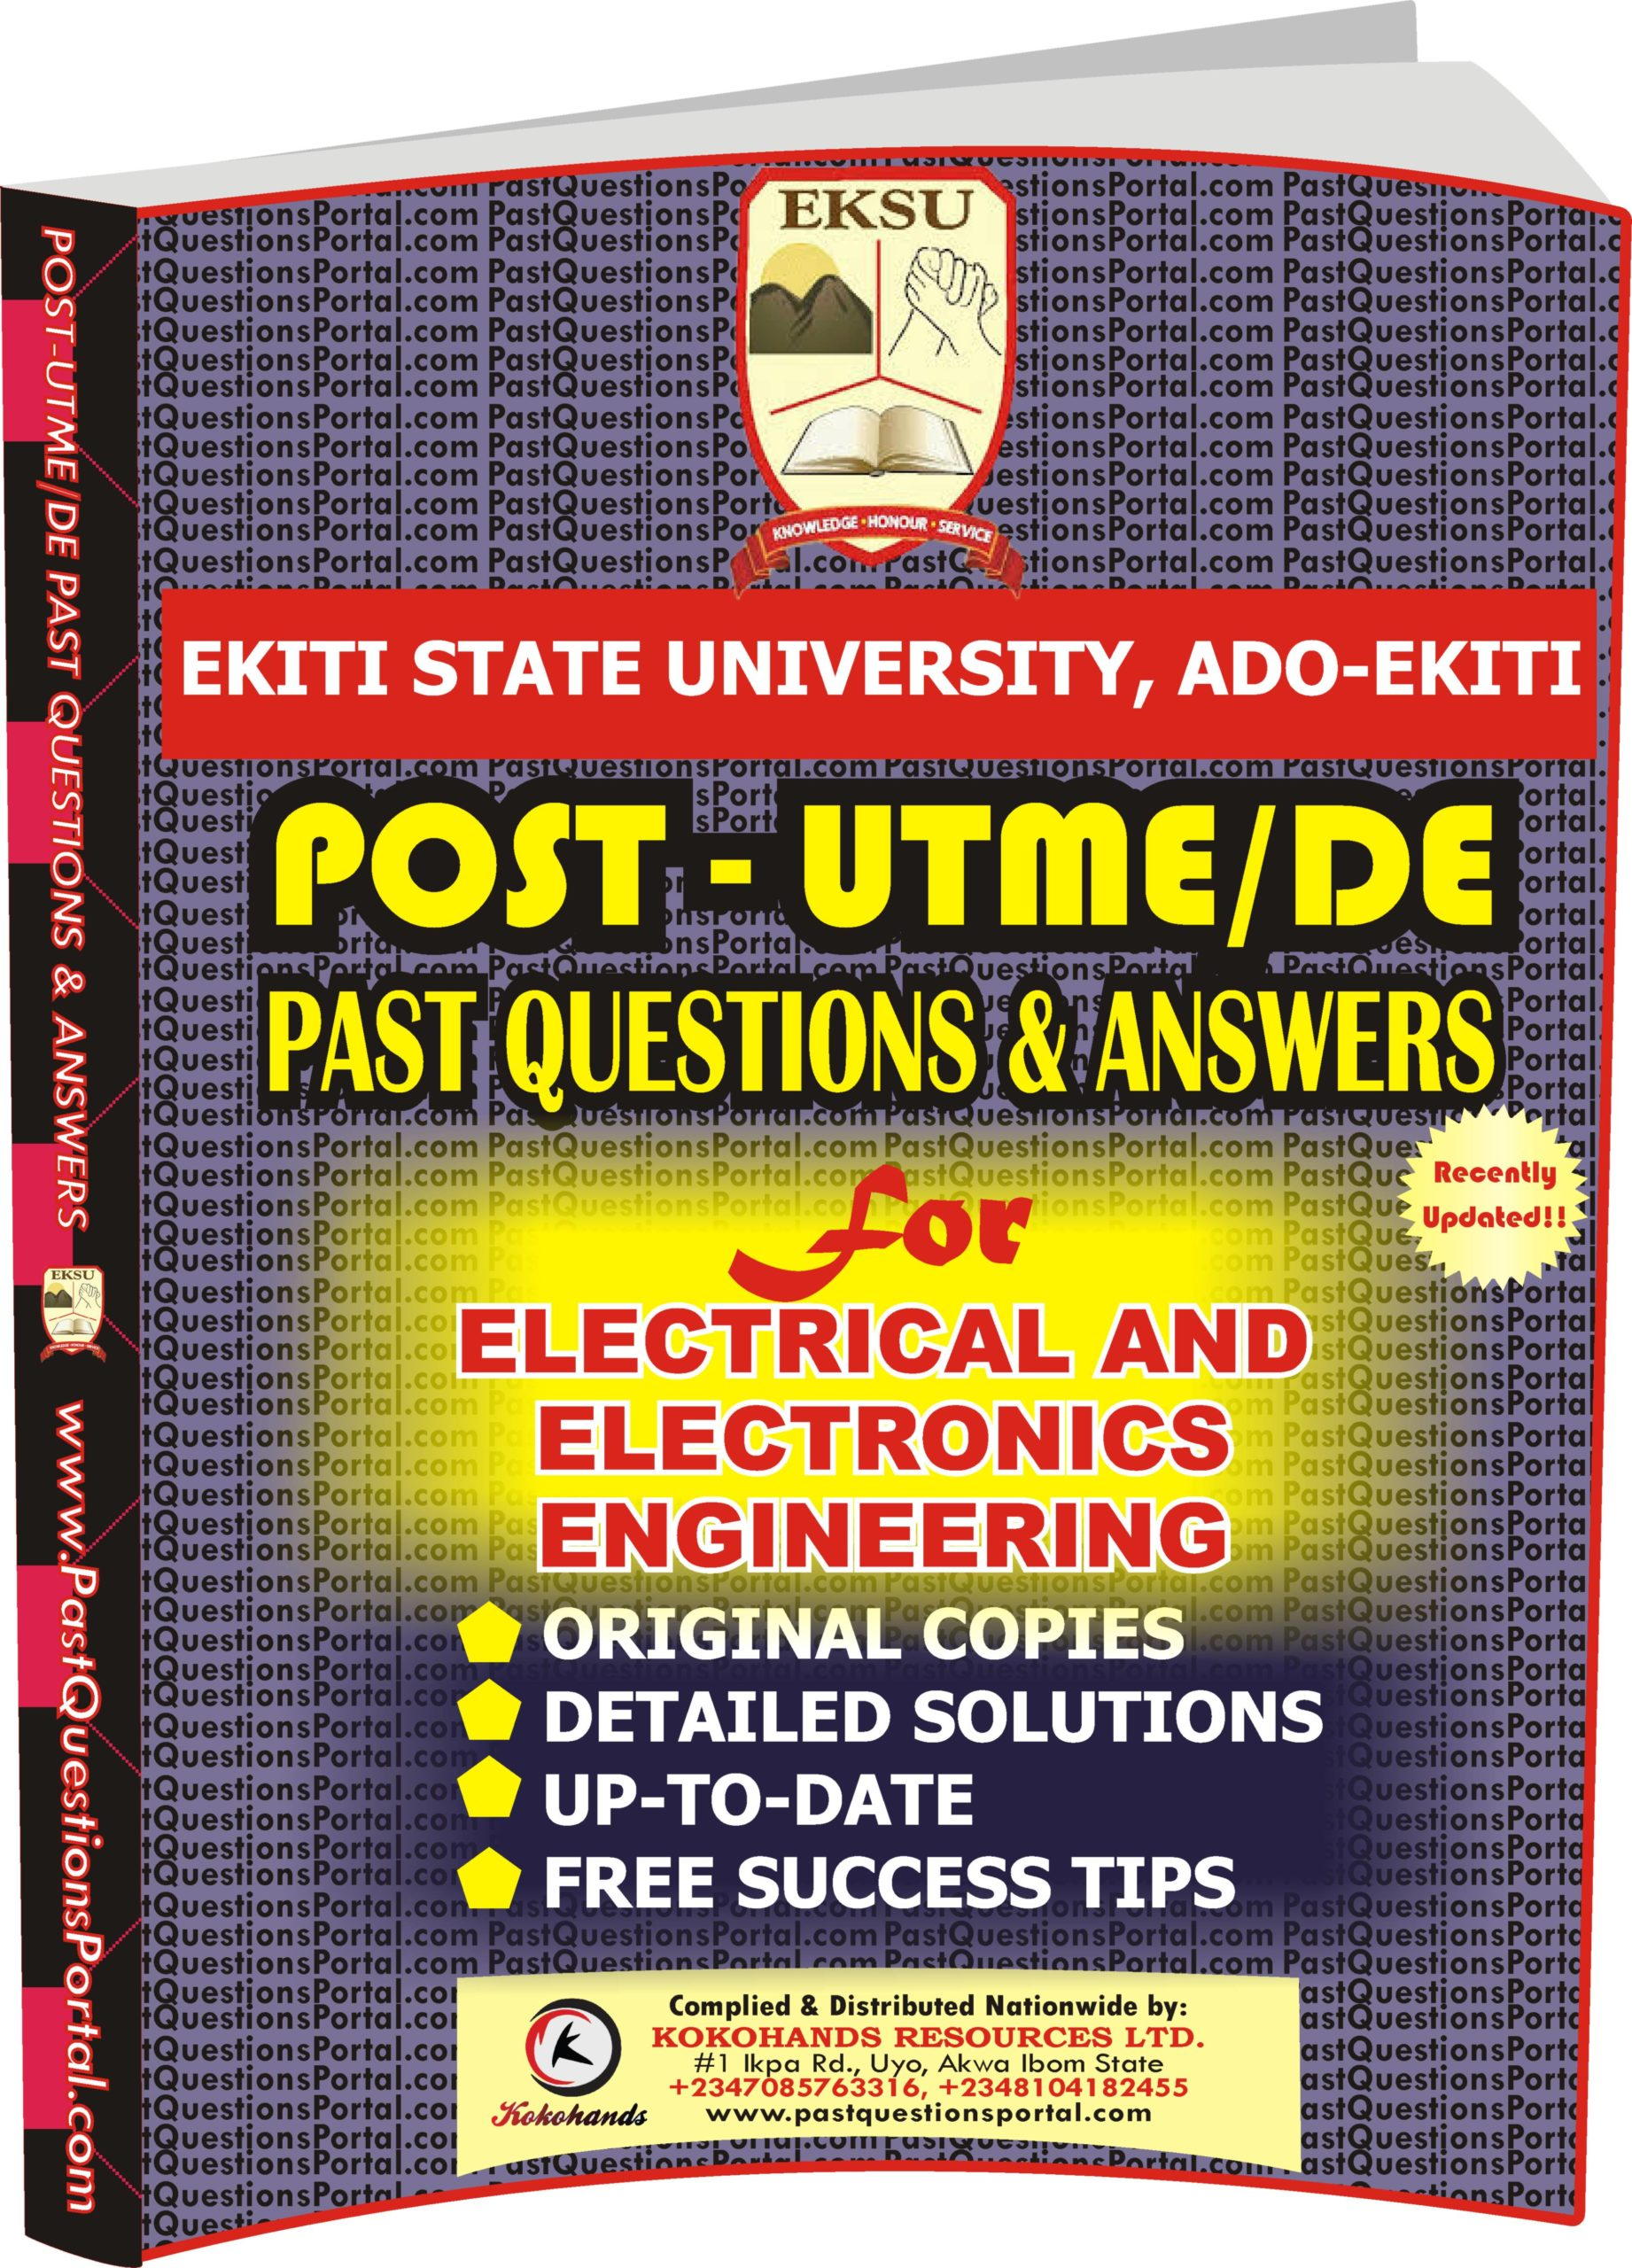 EKSU Post UTME Past Questions for Electrical and Electronics Engineering